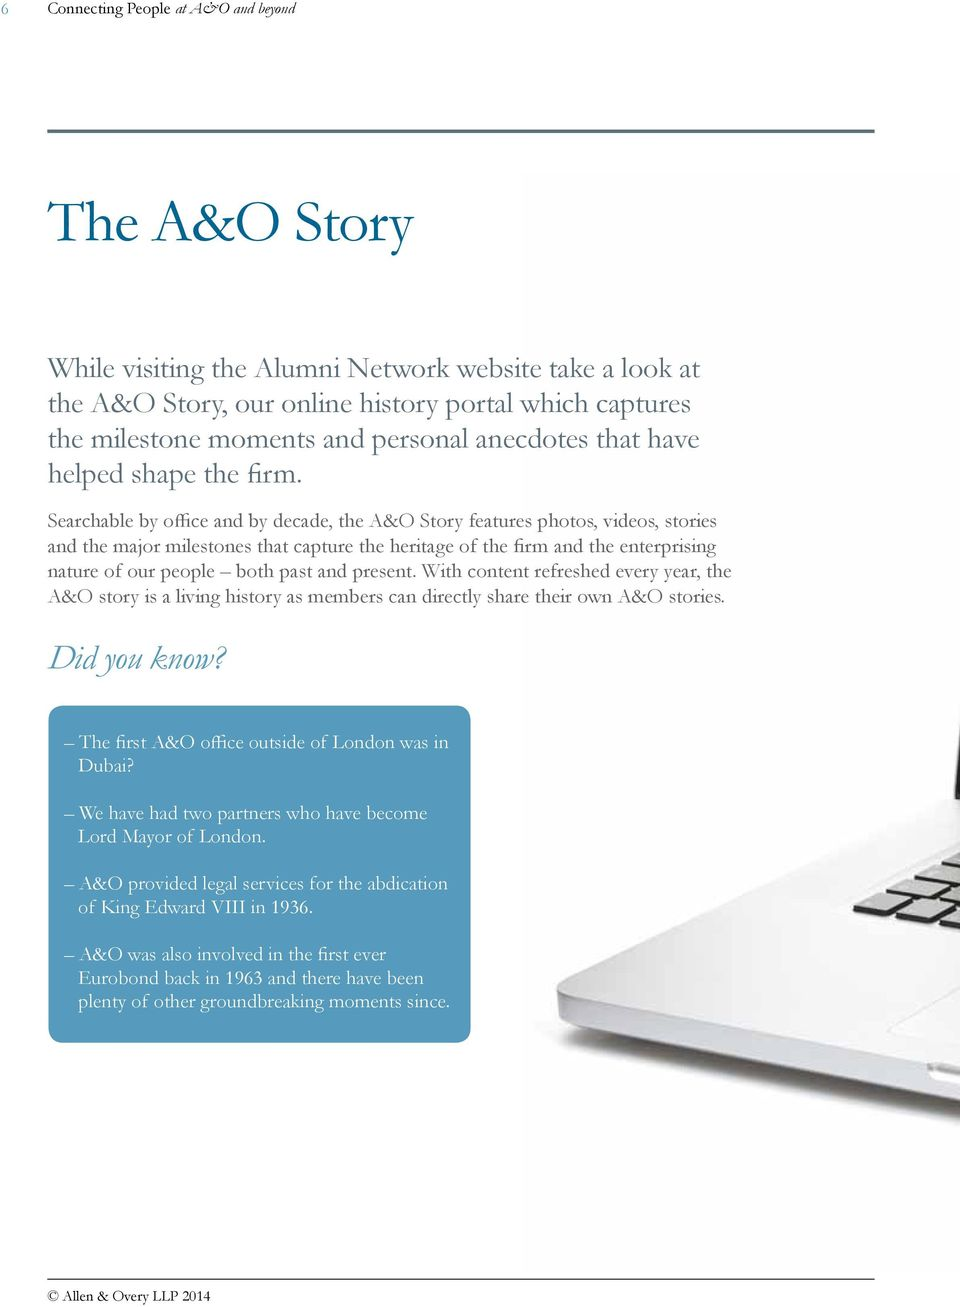 Searchable by office and by decade, the A&O Story features photos, videos, stories and the major milestones that capture the heritage of the firm and the enterprising nature of our people both past